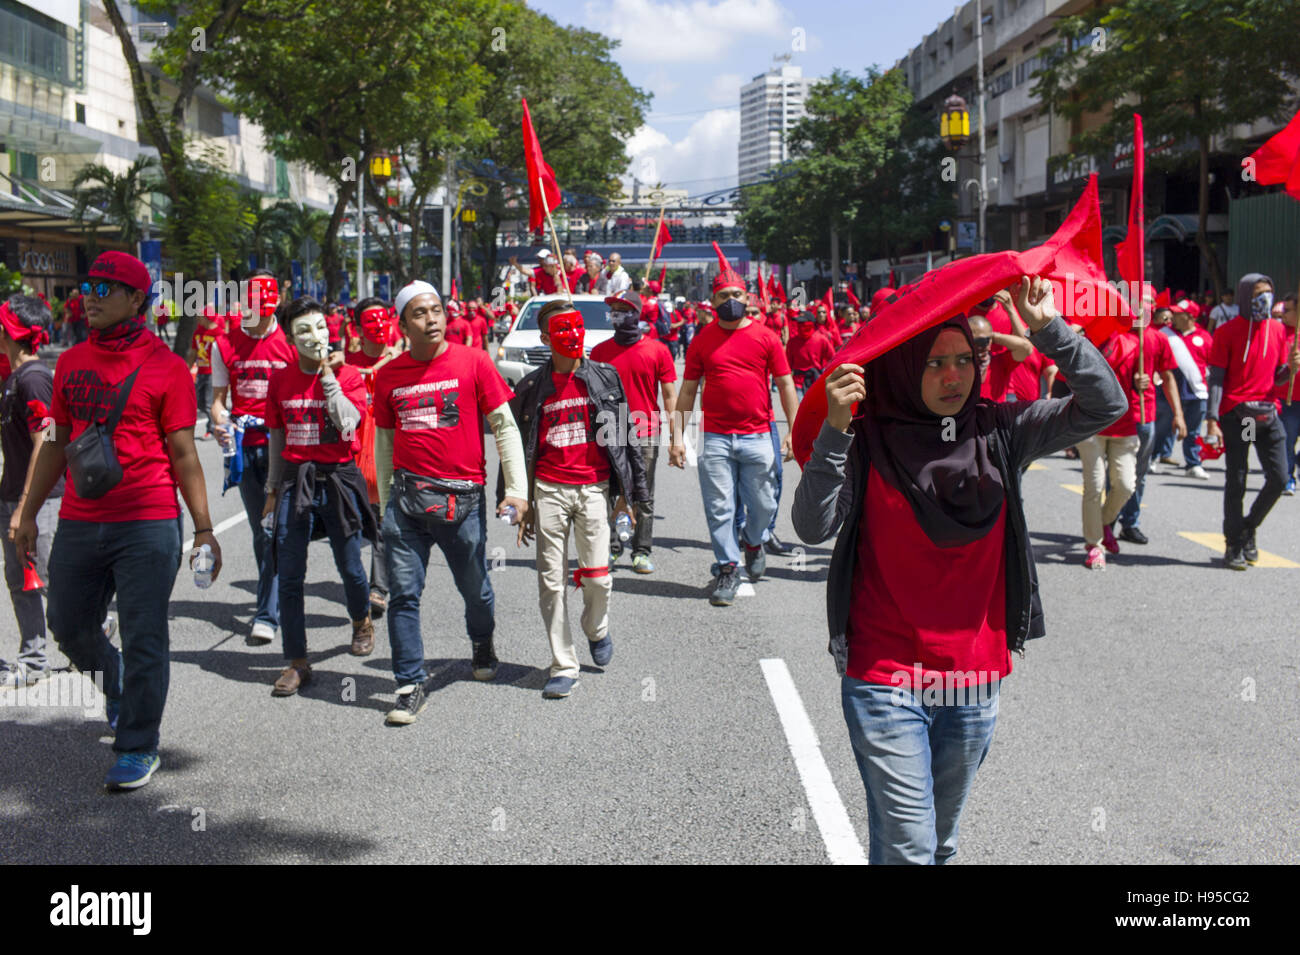 Kuala Lumpur, KUALA LUMPUR, MALAYSIA. 19th Nov, 2016. Rightist 'Red Shirts' supporters march to counter a protest Stock Photo